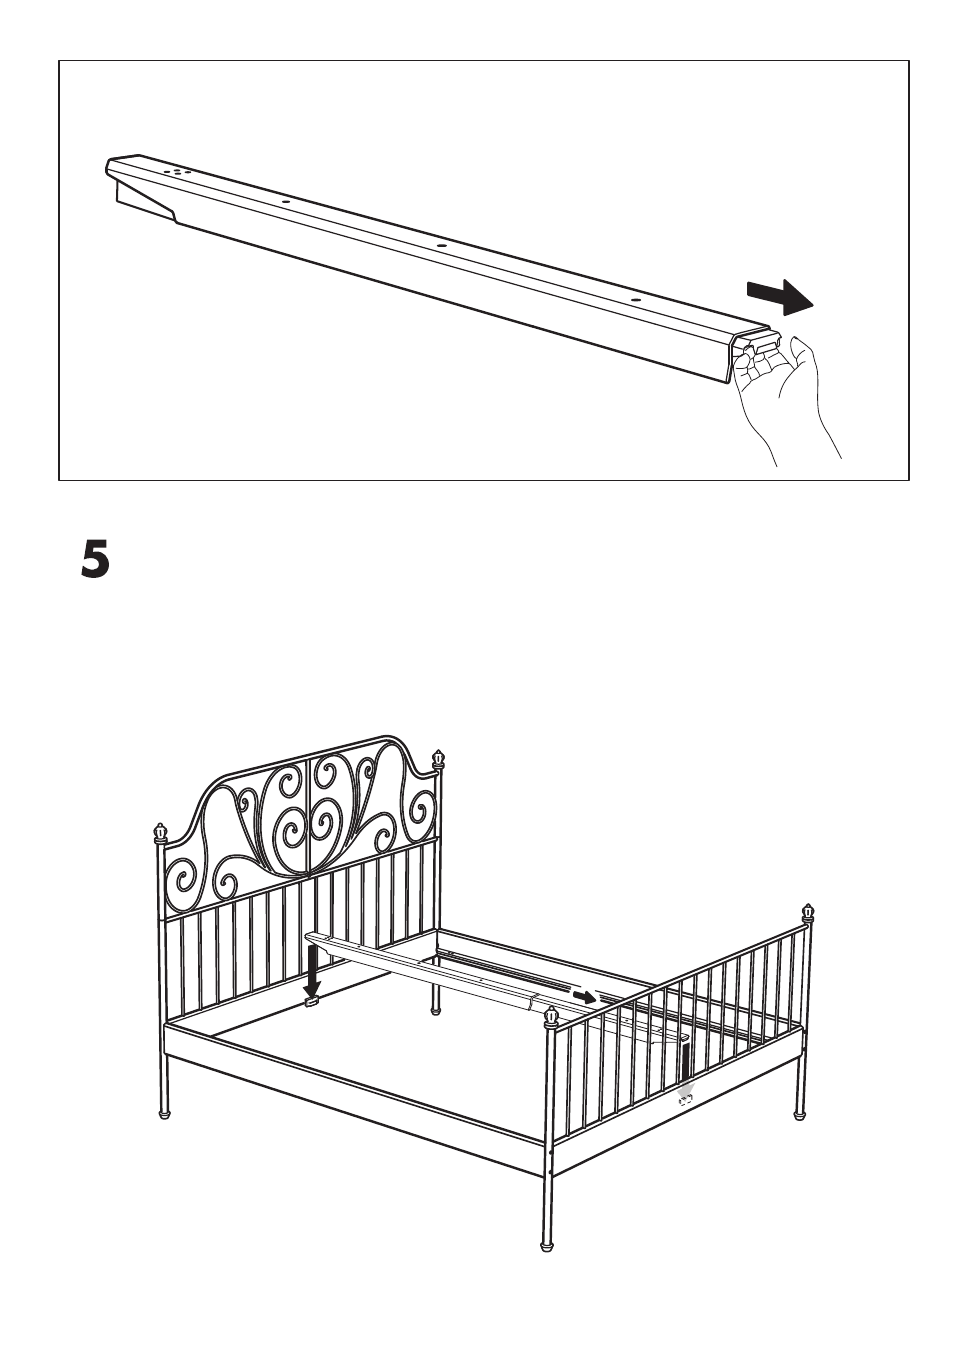 ikea leirvik bed frame full queen king assembly instruction page 7 free pdf download 8. Black Bedroom Furniture Sets. Home Design Ideas